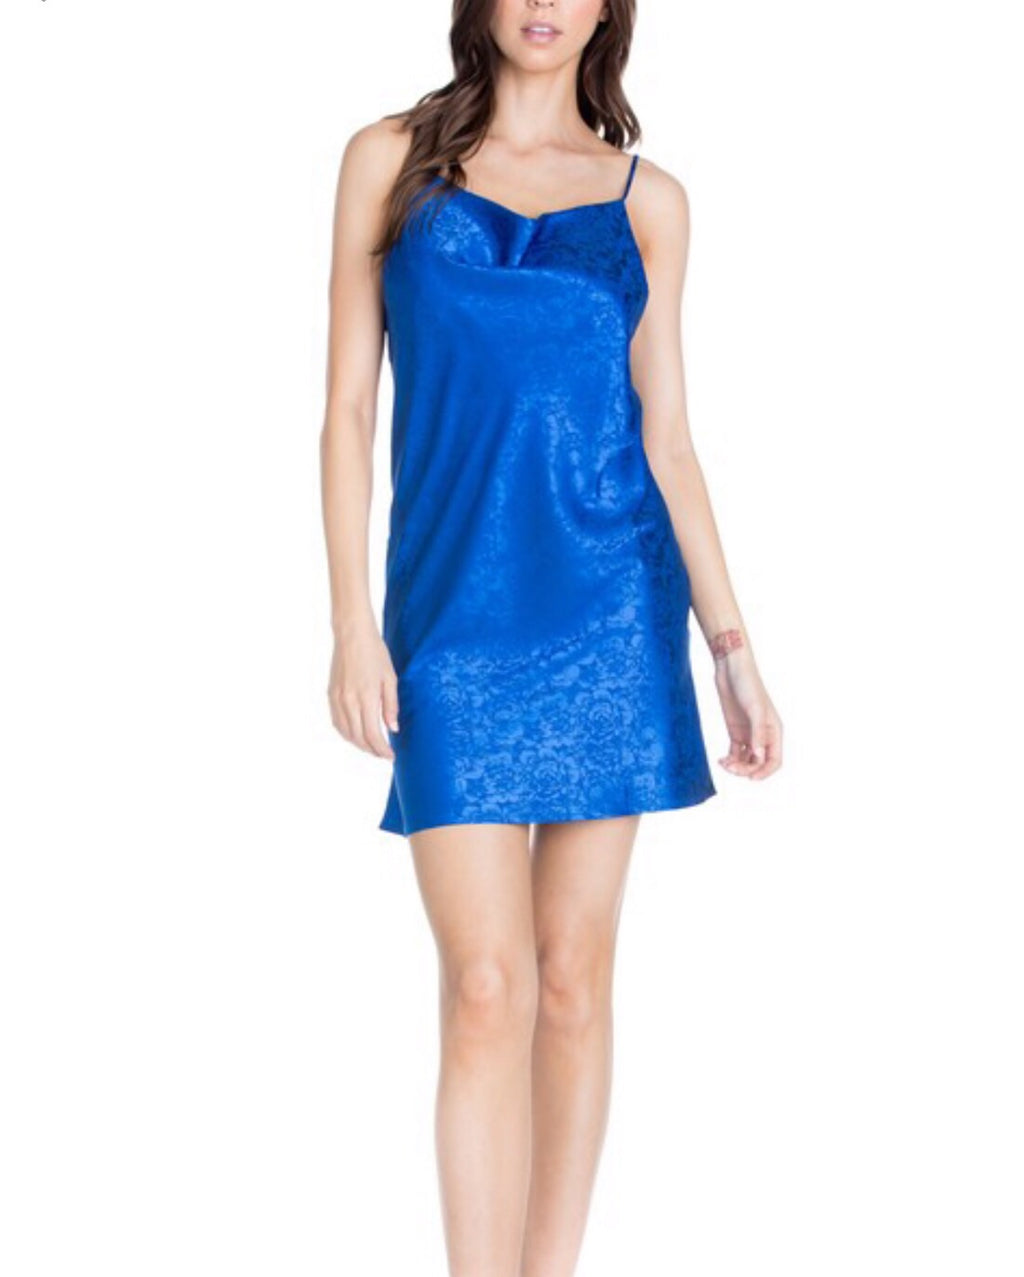 ROYAL BLUE TEXTURED SLIP DRESS